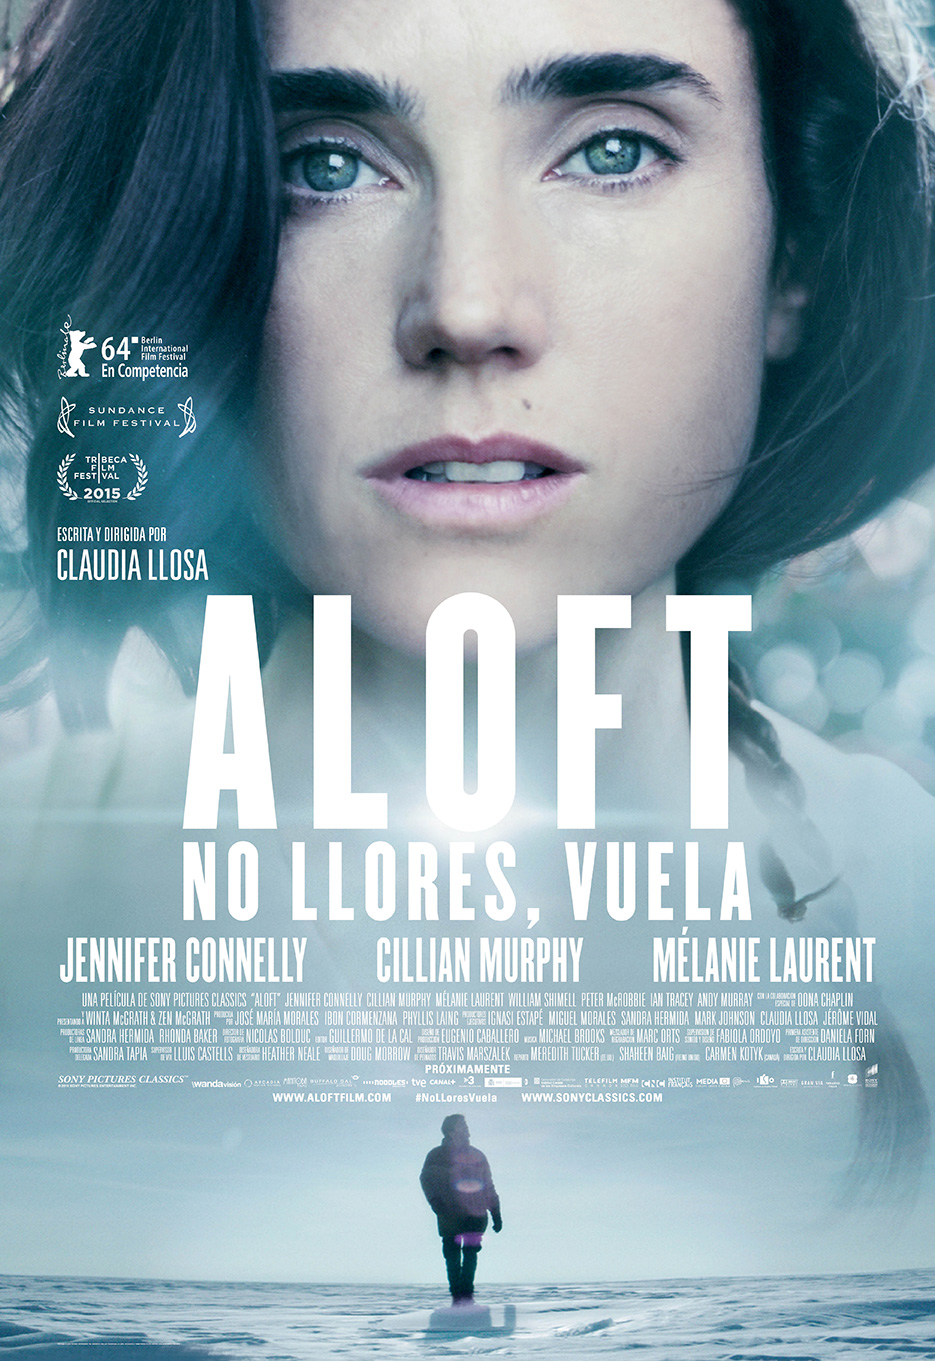 https://www.andesfilms.com.pe/aloft/